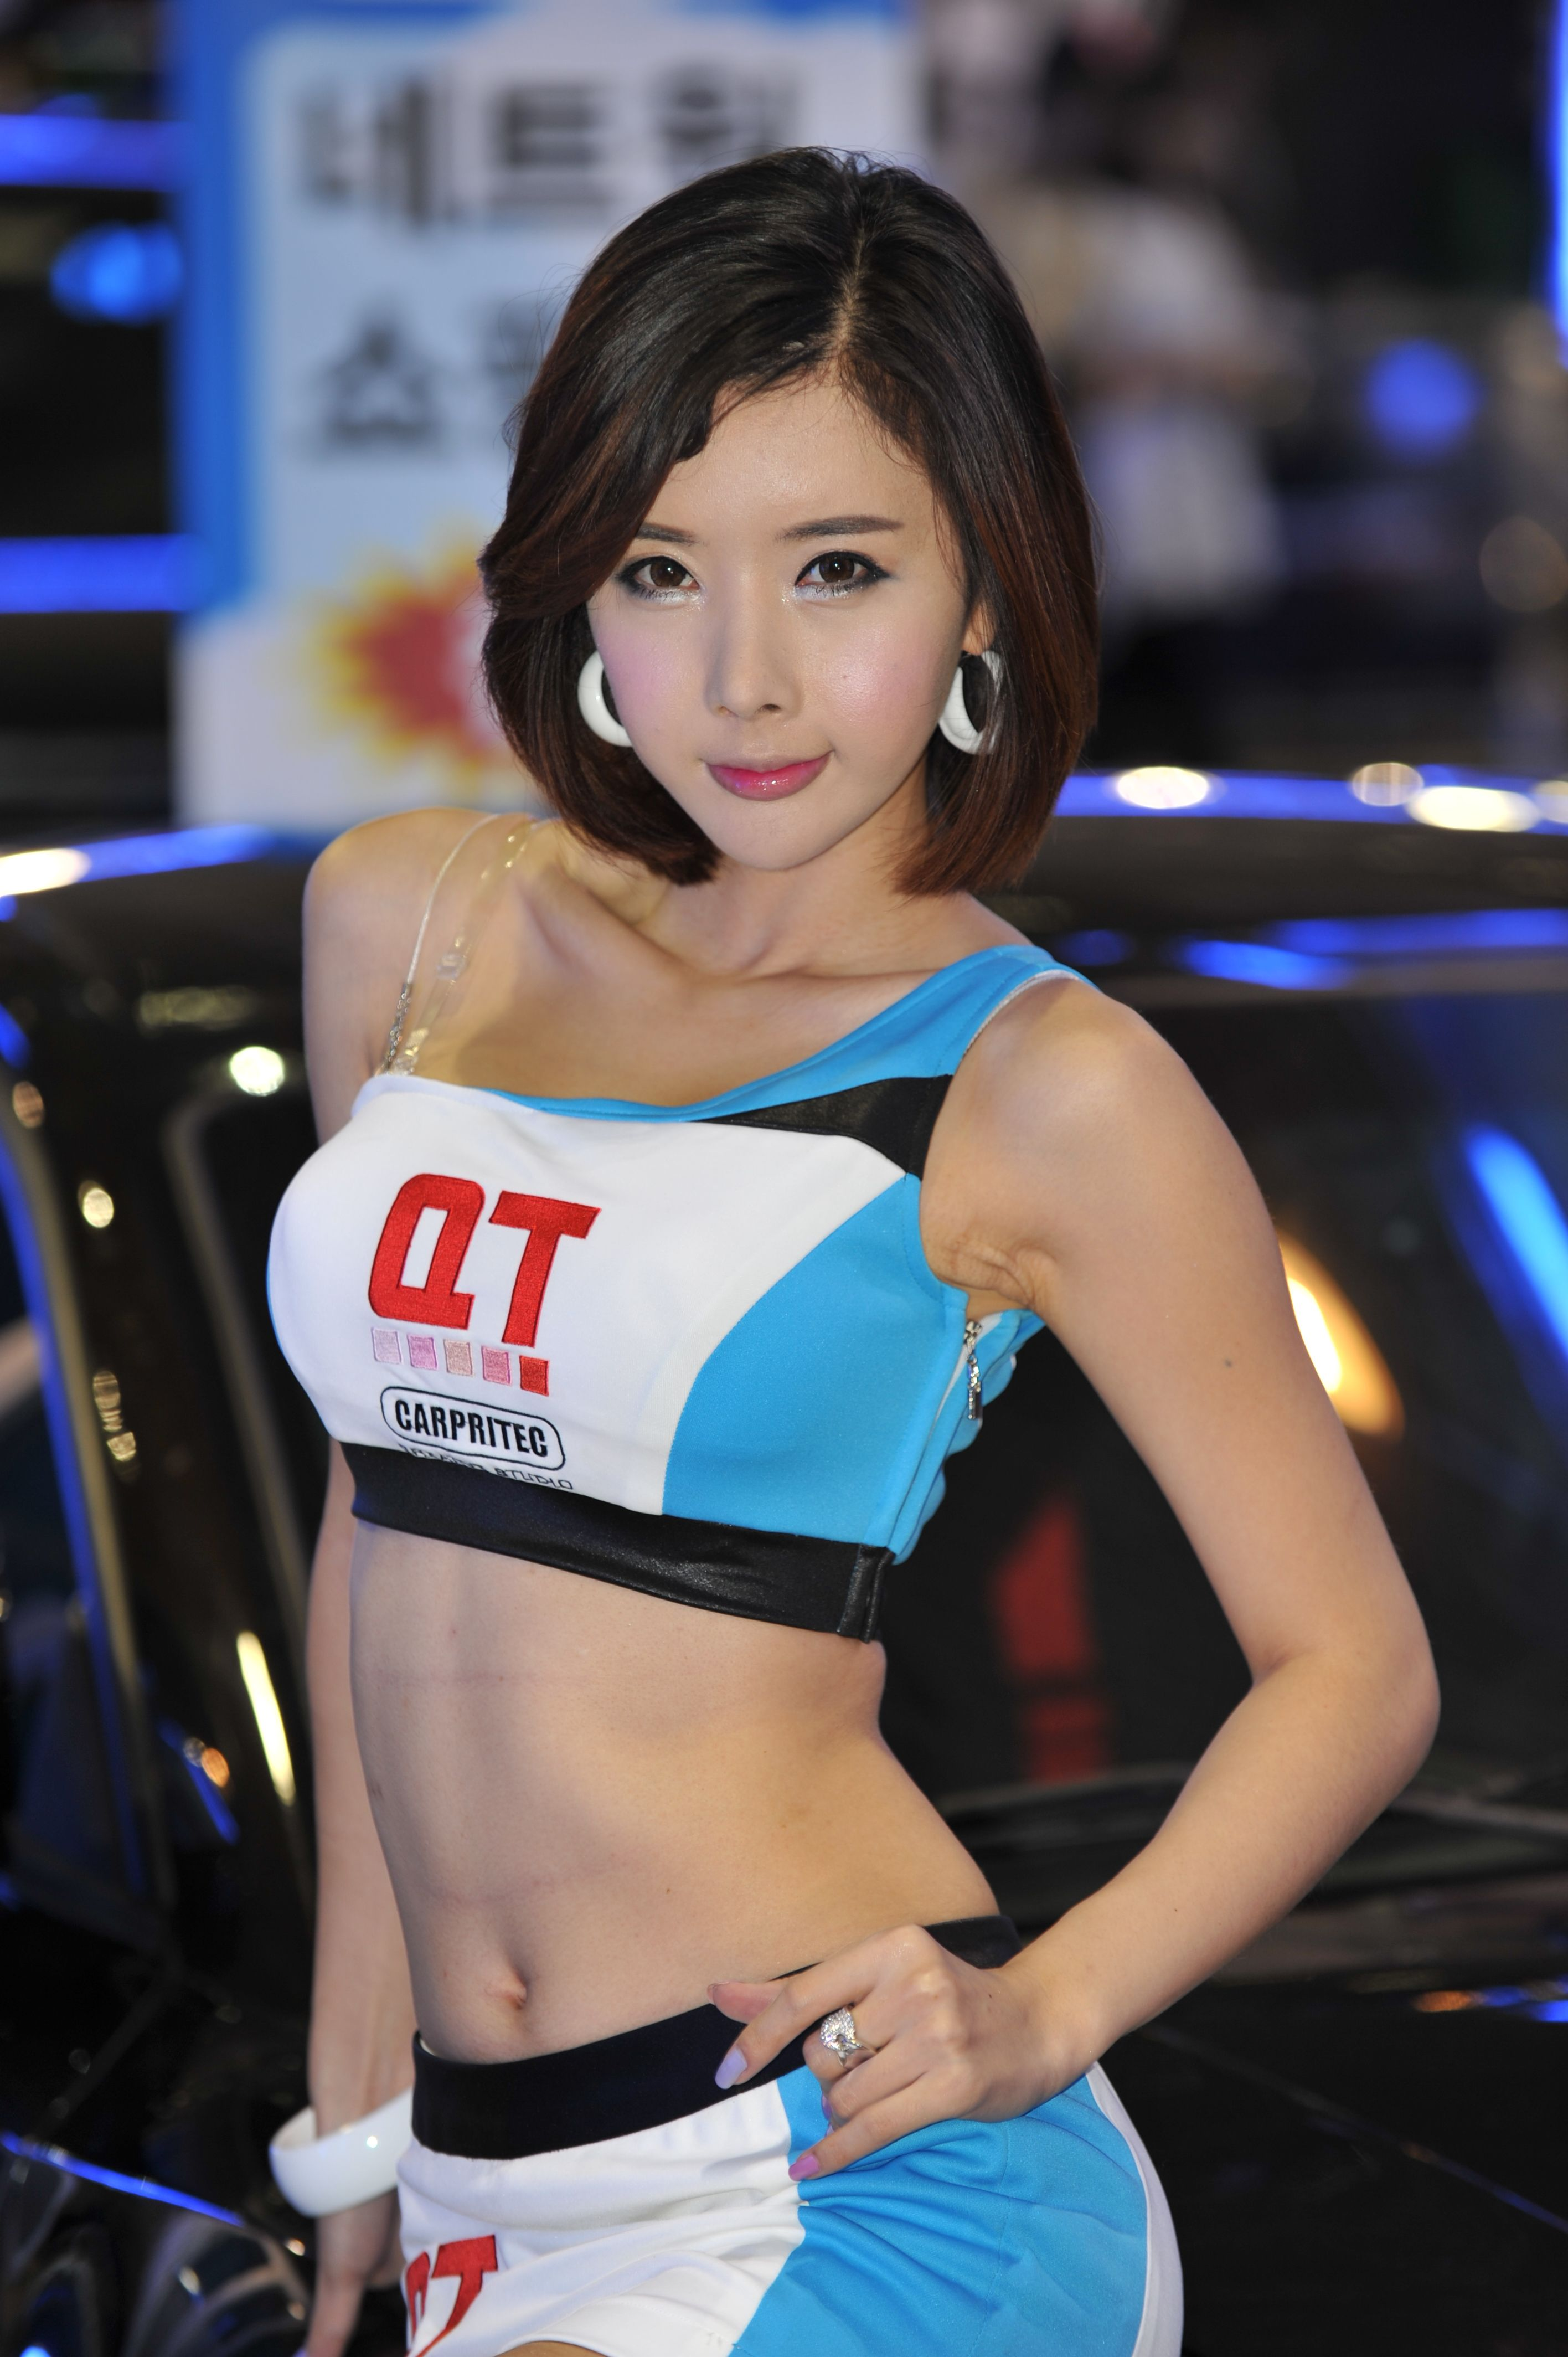 Asian girls images airport security-7055